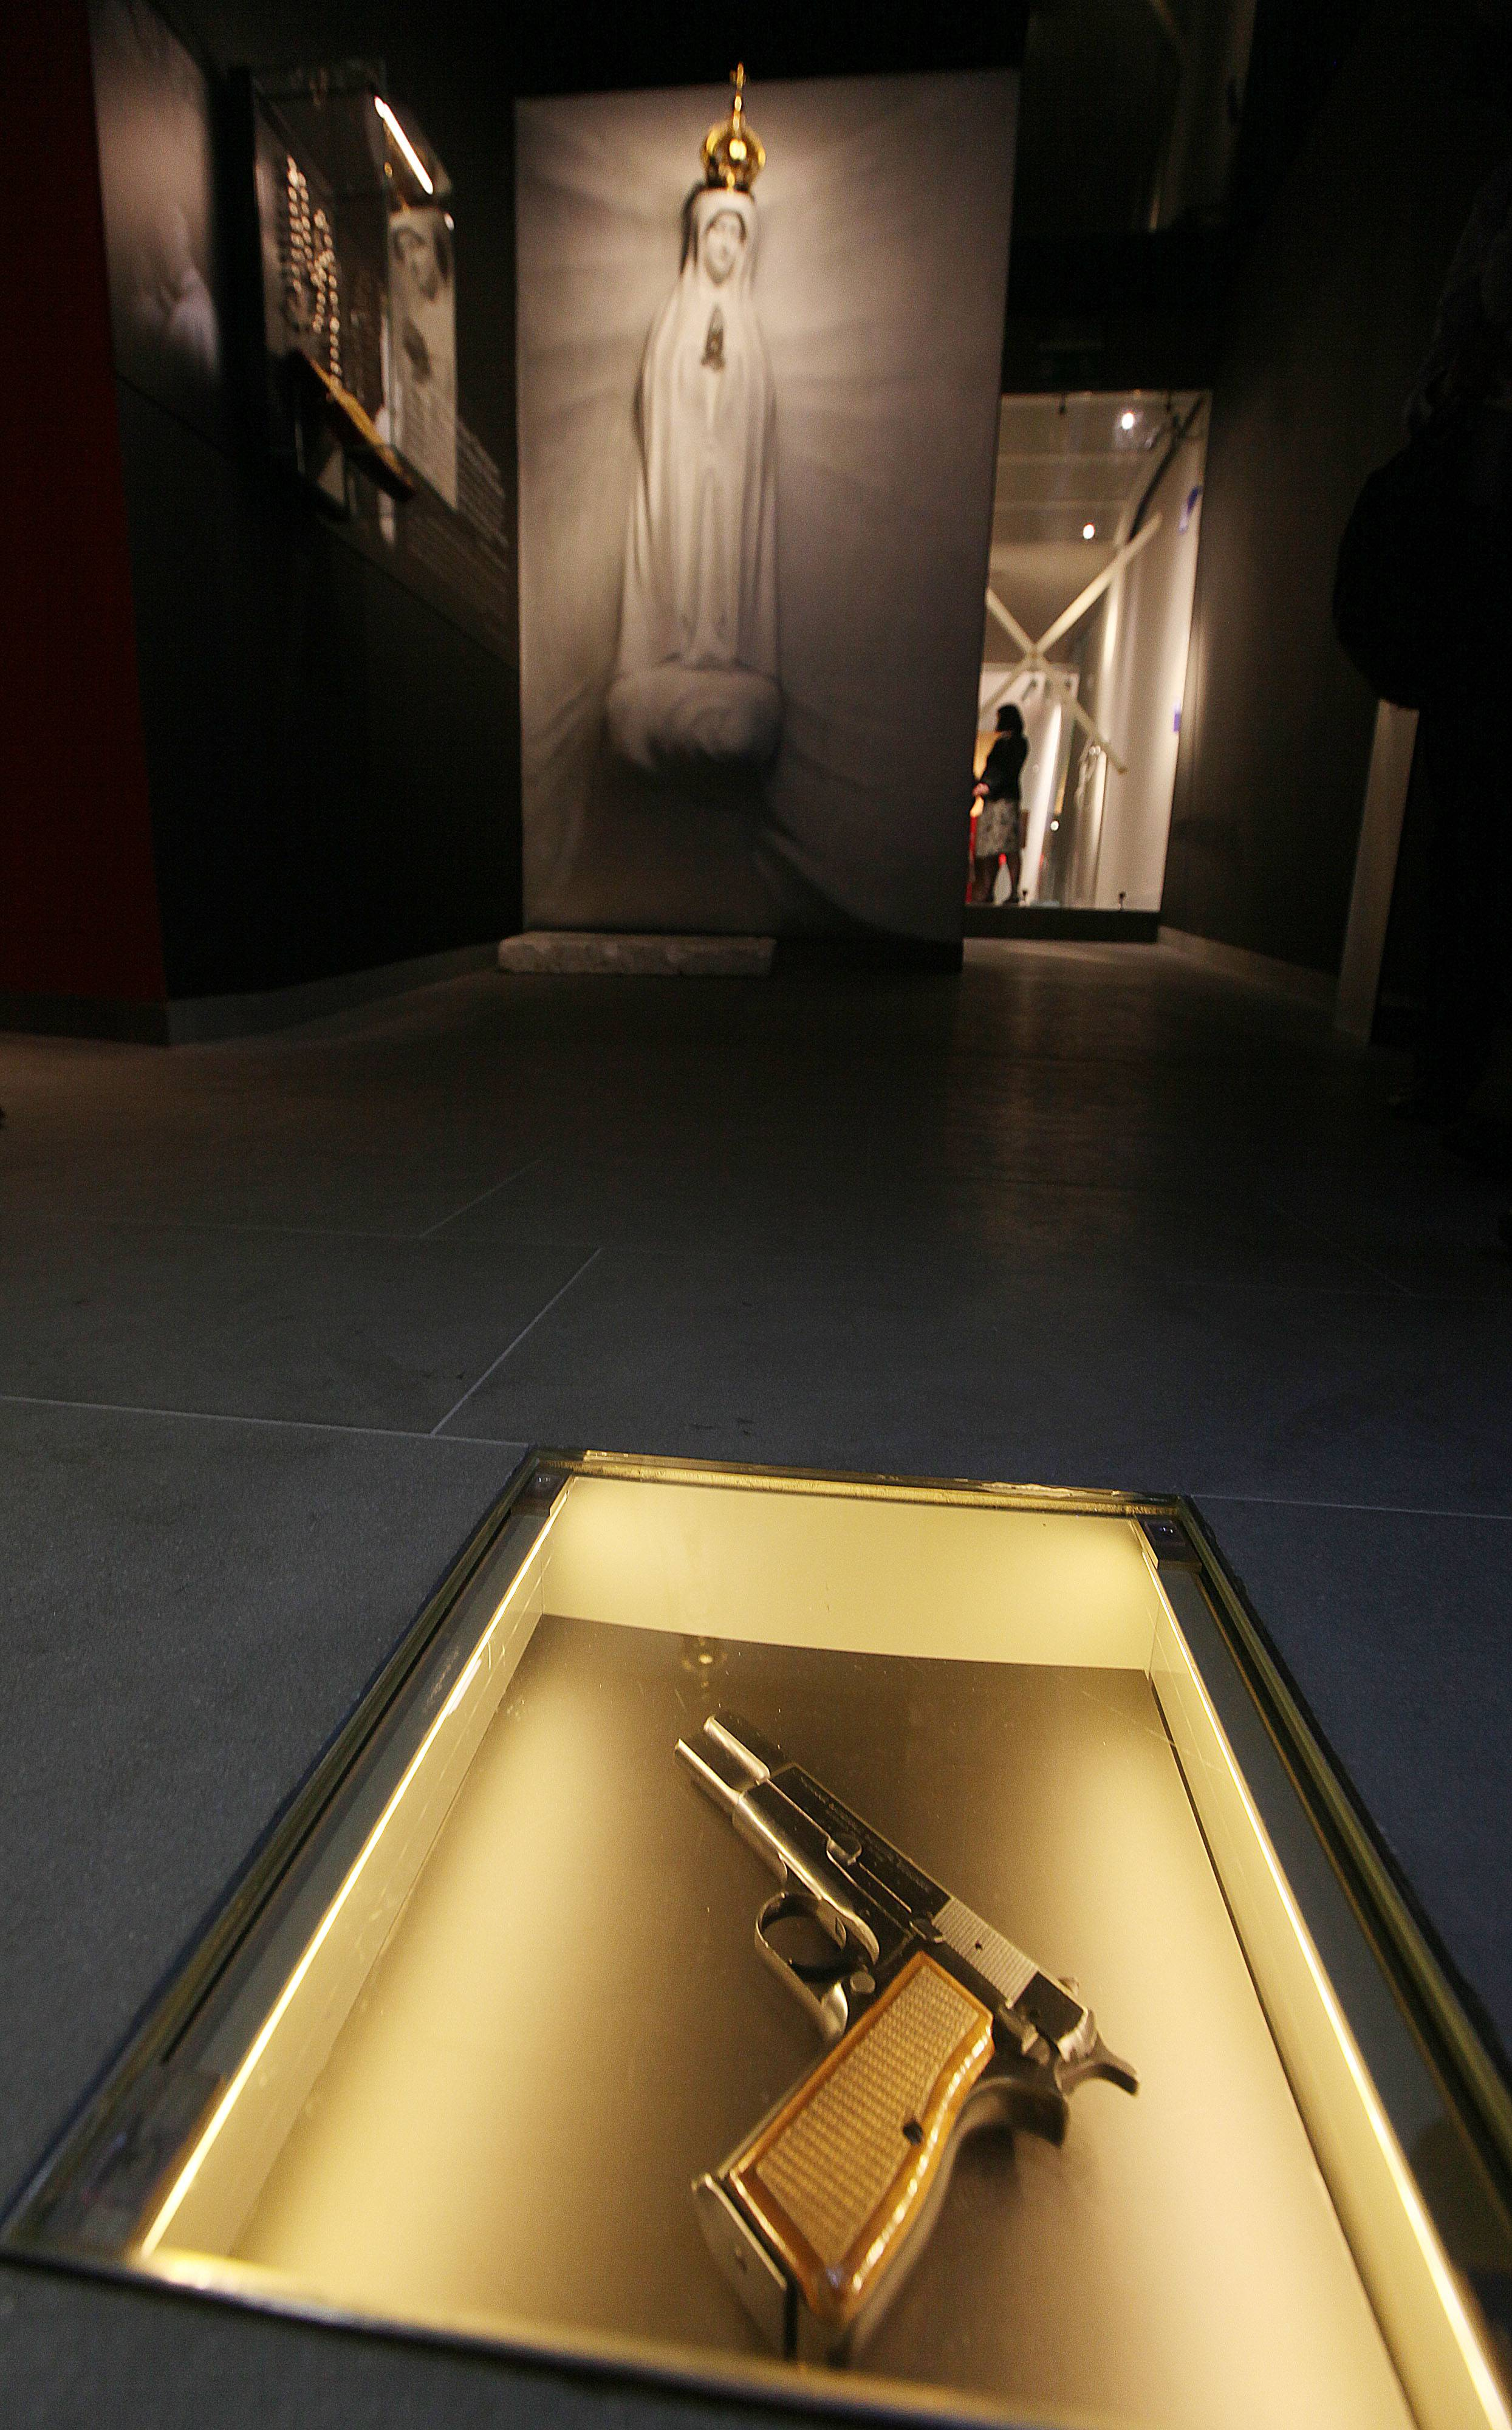 The Browning HP 9 mm handgun that would-be assassin Ali Agca used against Pope John Paul II injuring him in a May 13, 1981 attack in St. Peter's Square in Rome, is pictured at the new Pope Museum in Wadowice, Poland, Monday, April 7, 2014. The gun is among items on display at a new multimedia museum in the Pope's birth house in Wadowice. The museum opens this week, ahead of the Vatican ceremony during which he will be made a saint April 27.